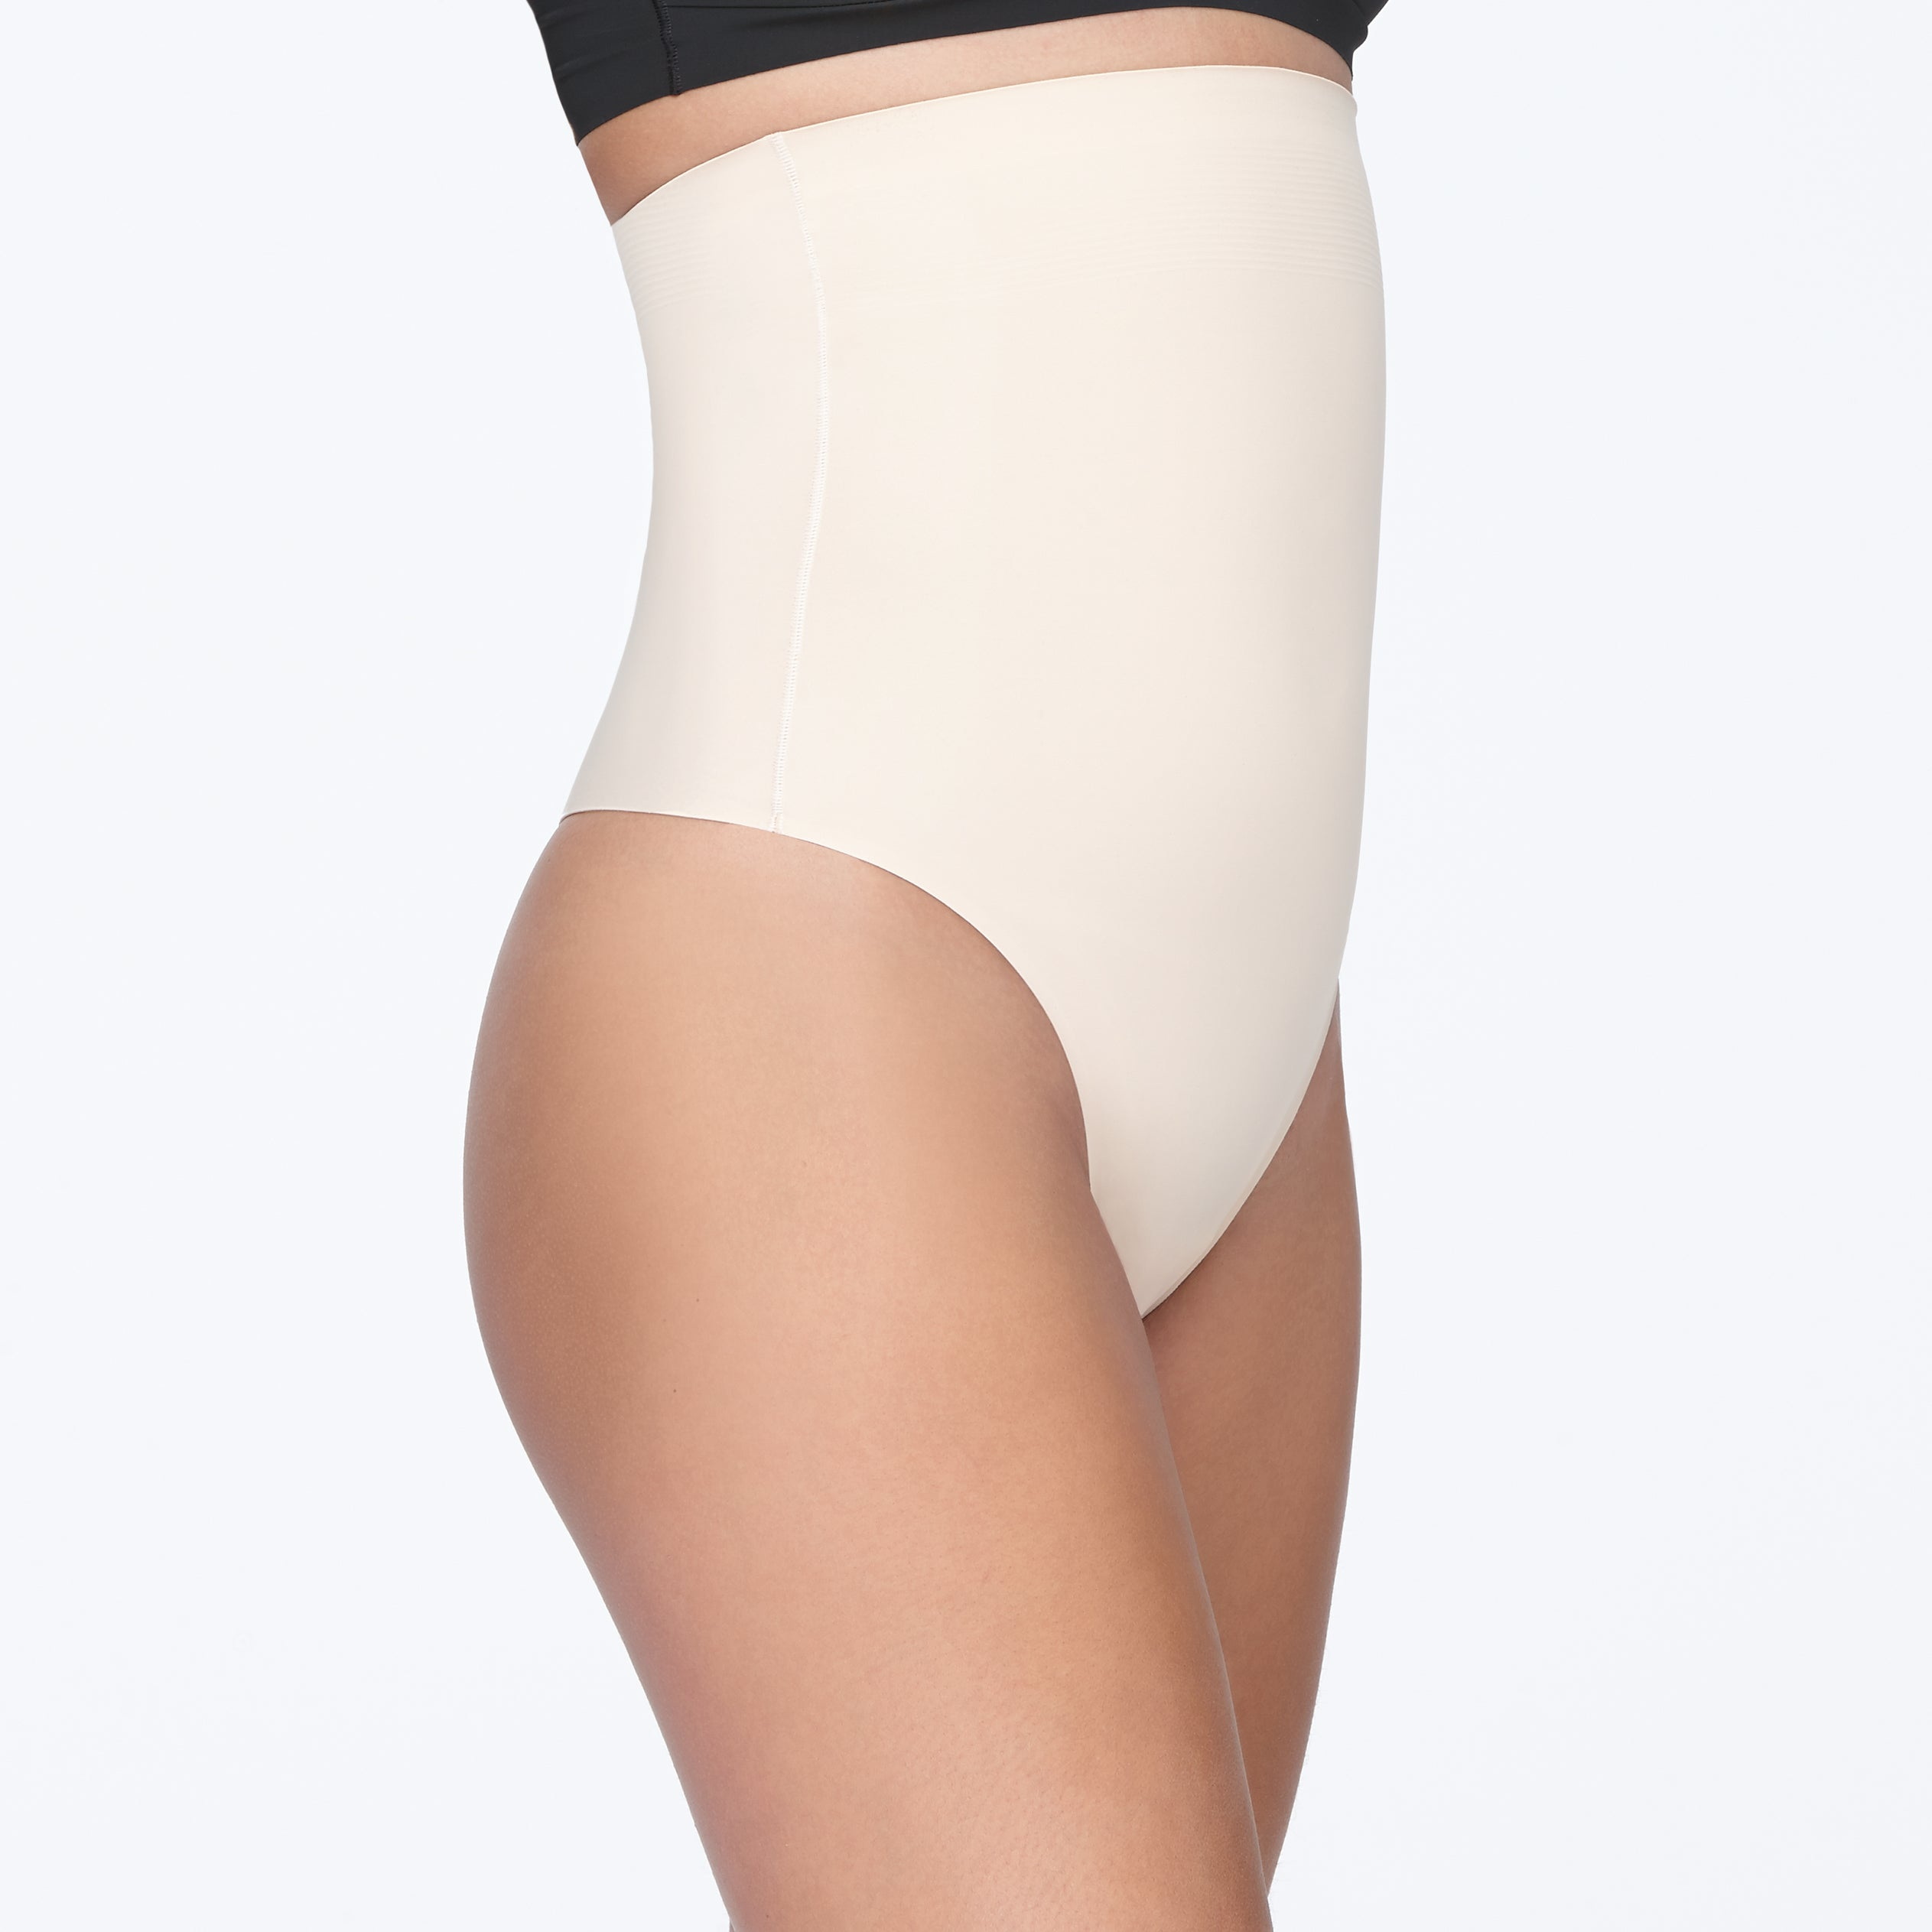 Brill High Waist Thong - YT2-228 - Nude - Side 1